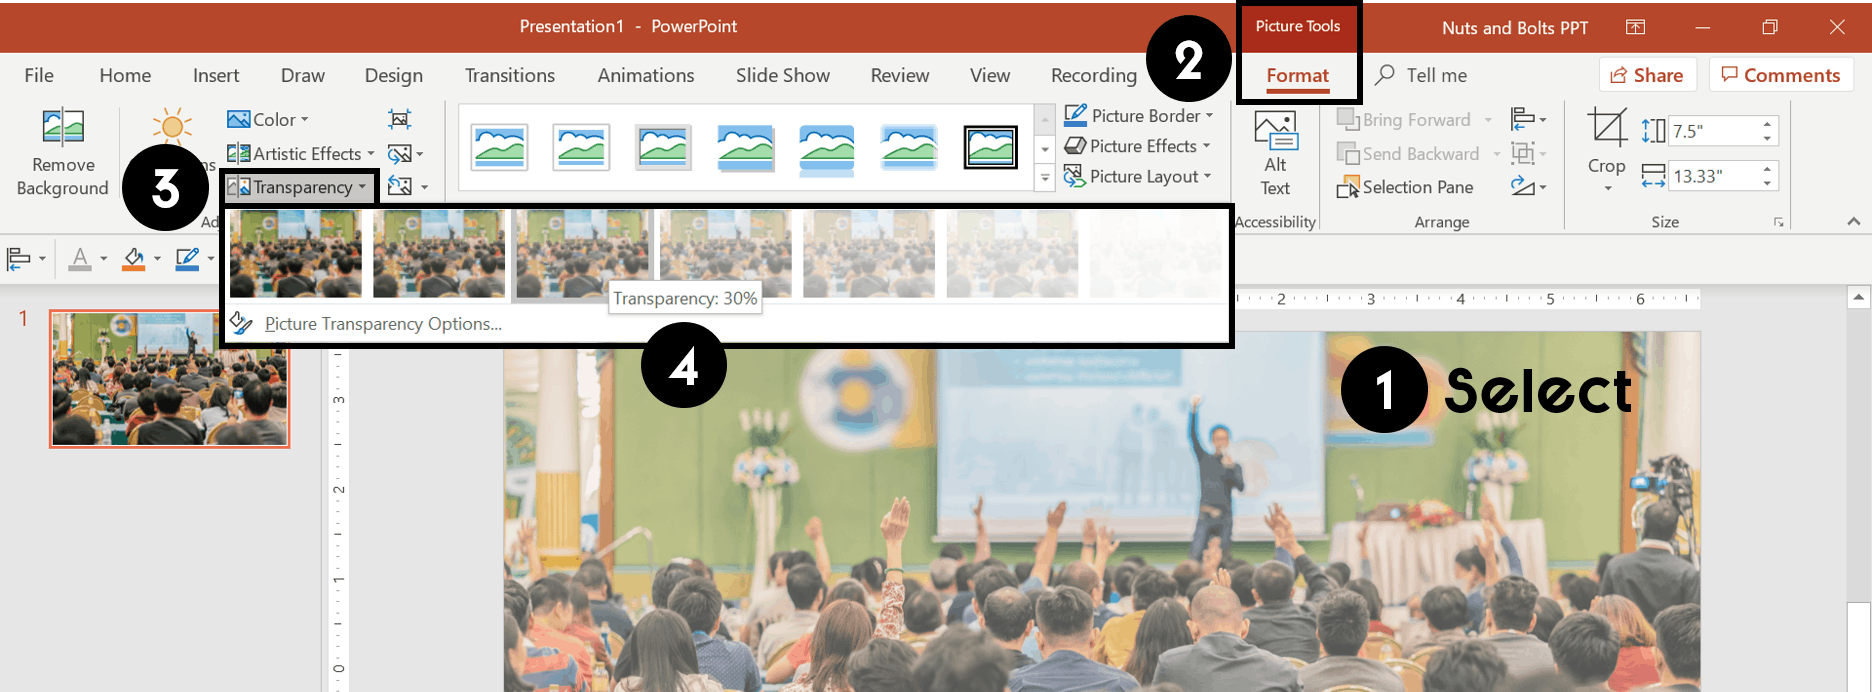 How to Make an Image Transparent in PowerPoint (Step.